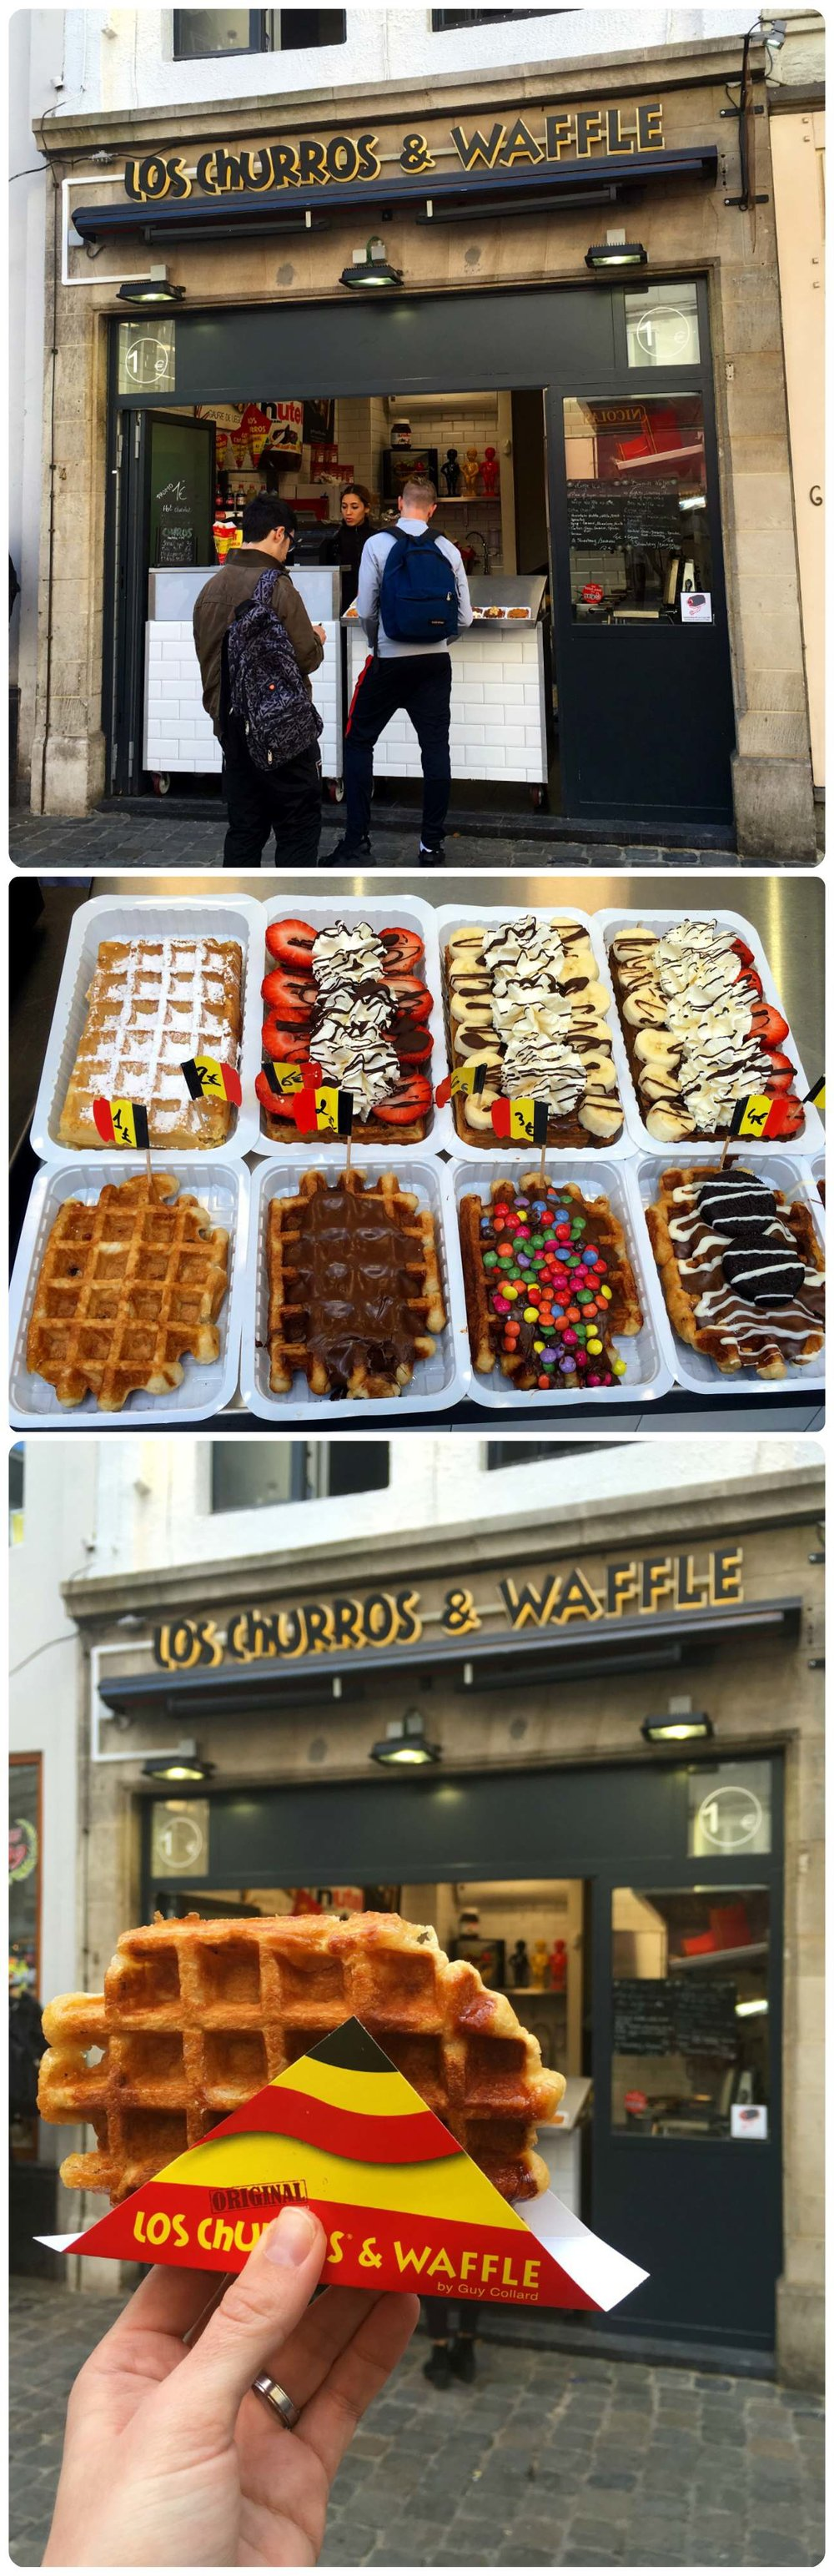 Waffles from Los Churros in Brussels, Belgium.